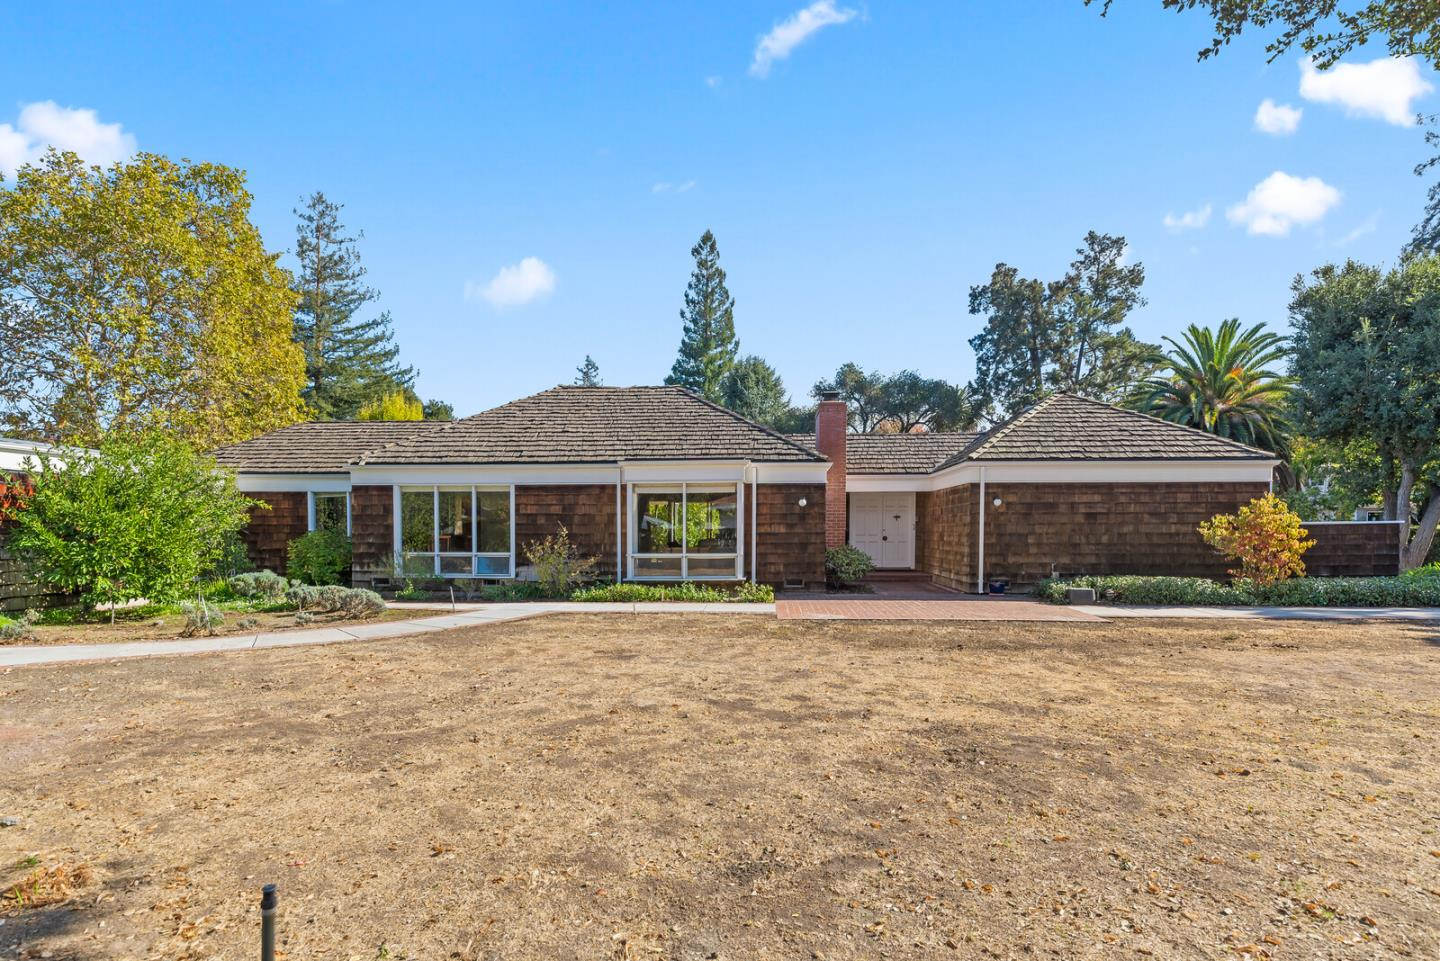 1201 Bryant ST, PALO ALTO, California 94301, 3 Bedrooms Bedrooms, ,3 BathroomsBathrooms,Residential,For Sale,1201 Bryant ST,ML81817614